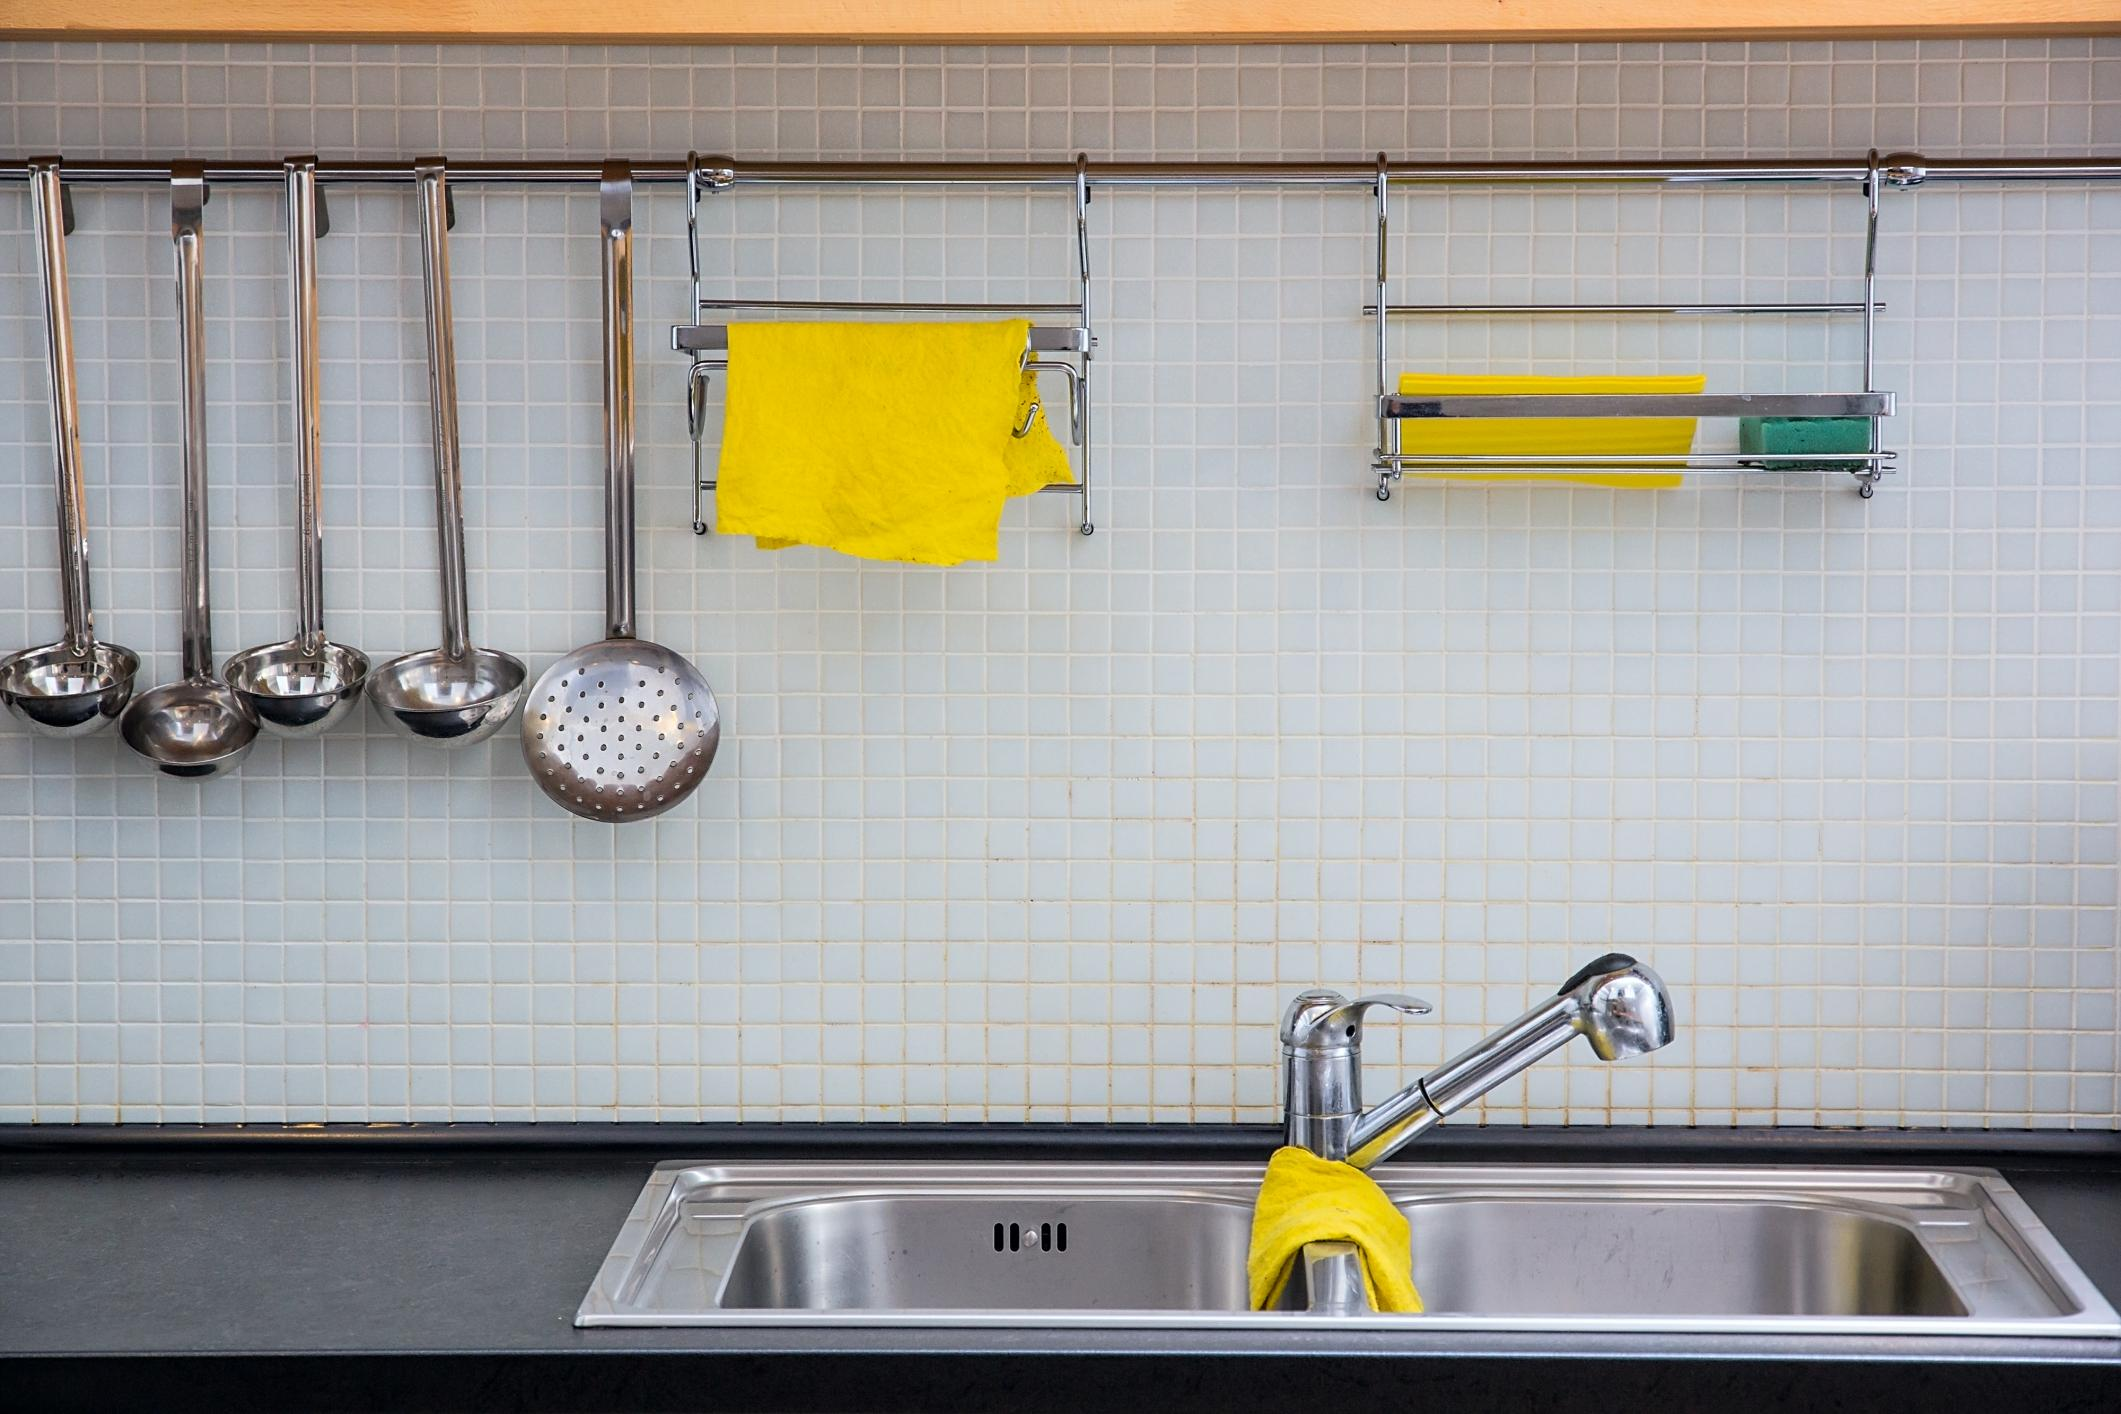 How Do I Measure My Kitchen Sink